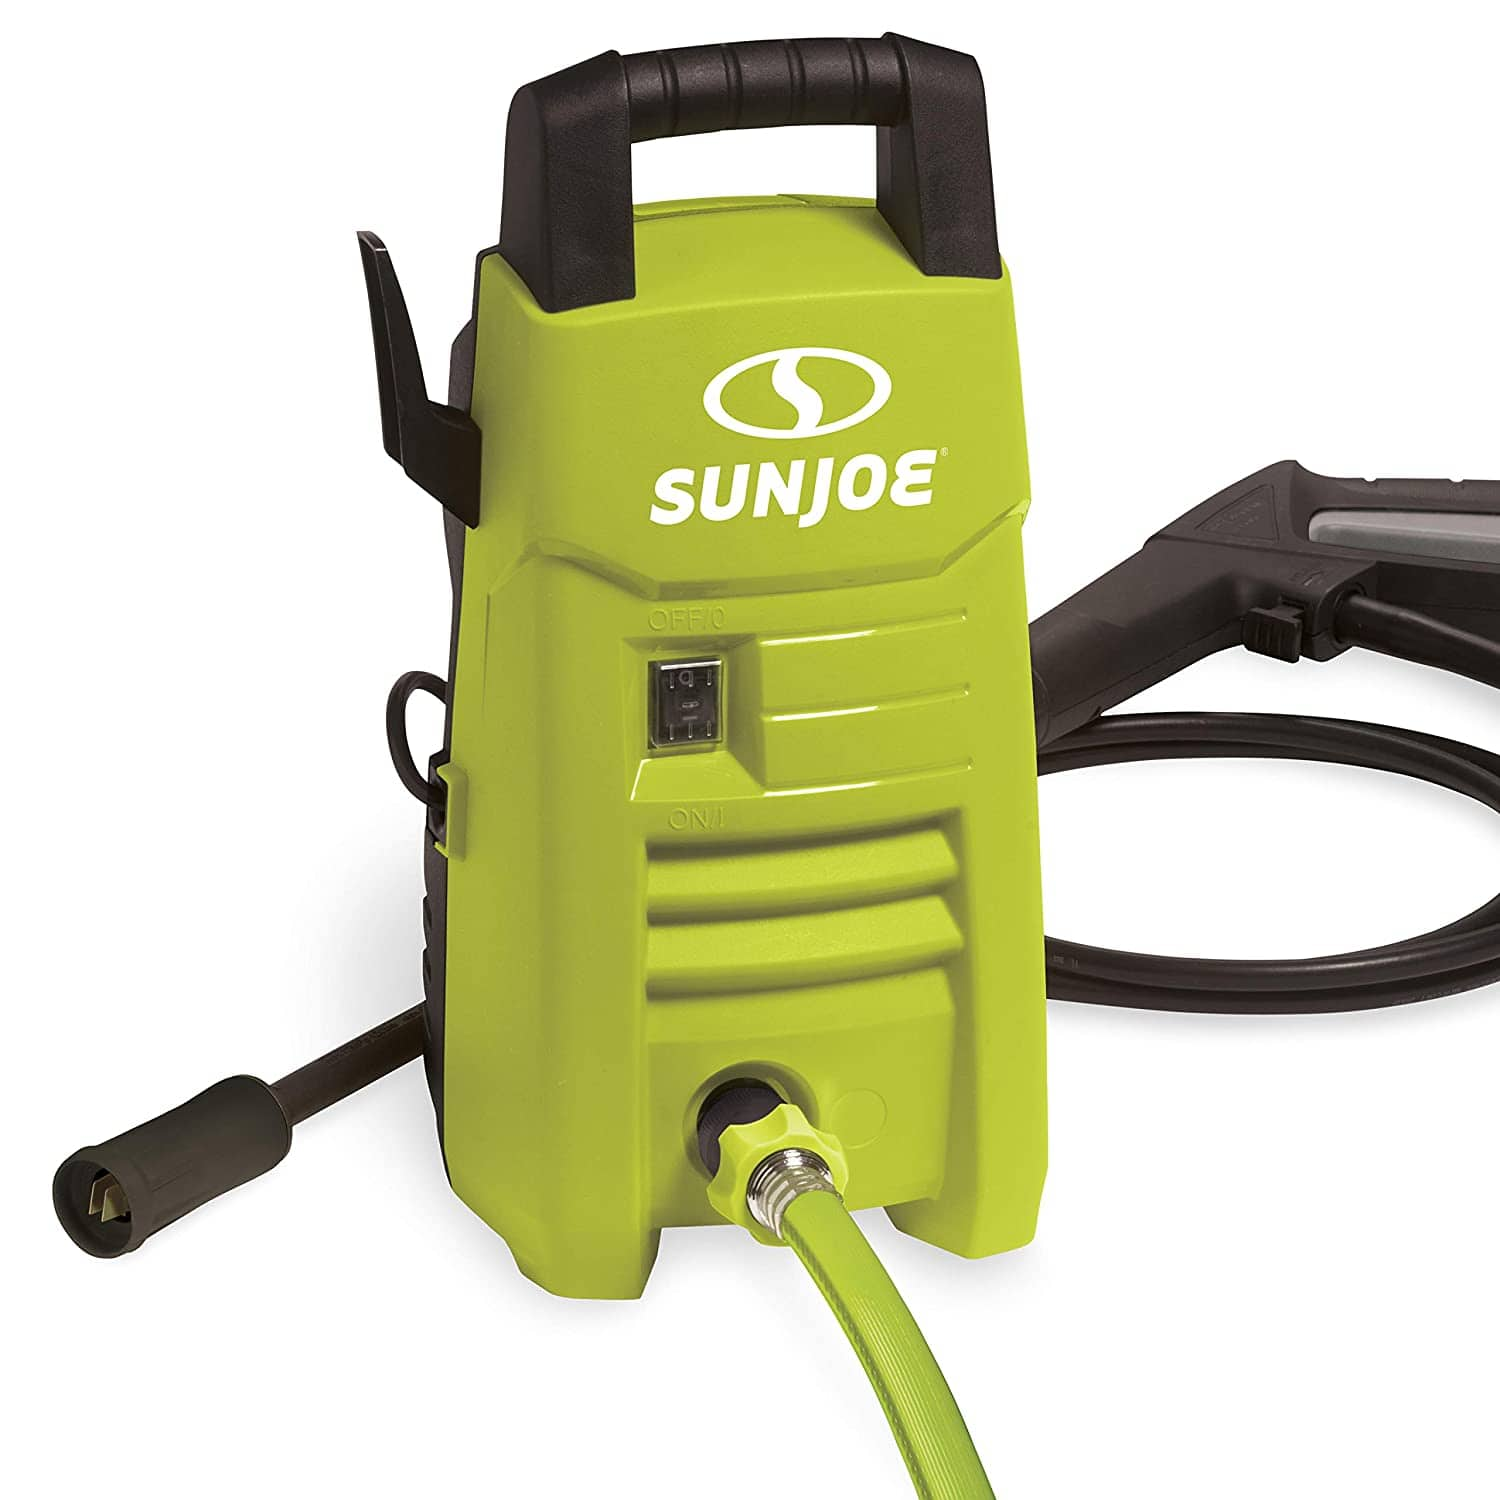 Sun Joe SPX201E 1350 Max PSI 1.45 GPM 10-Amp Electric Pressure Washer (Green) $42.65 + Free Shipping via Amazon